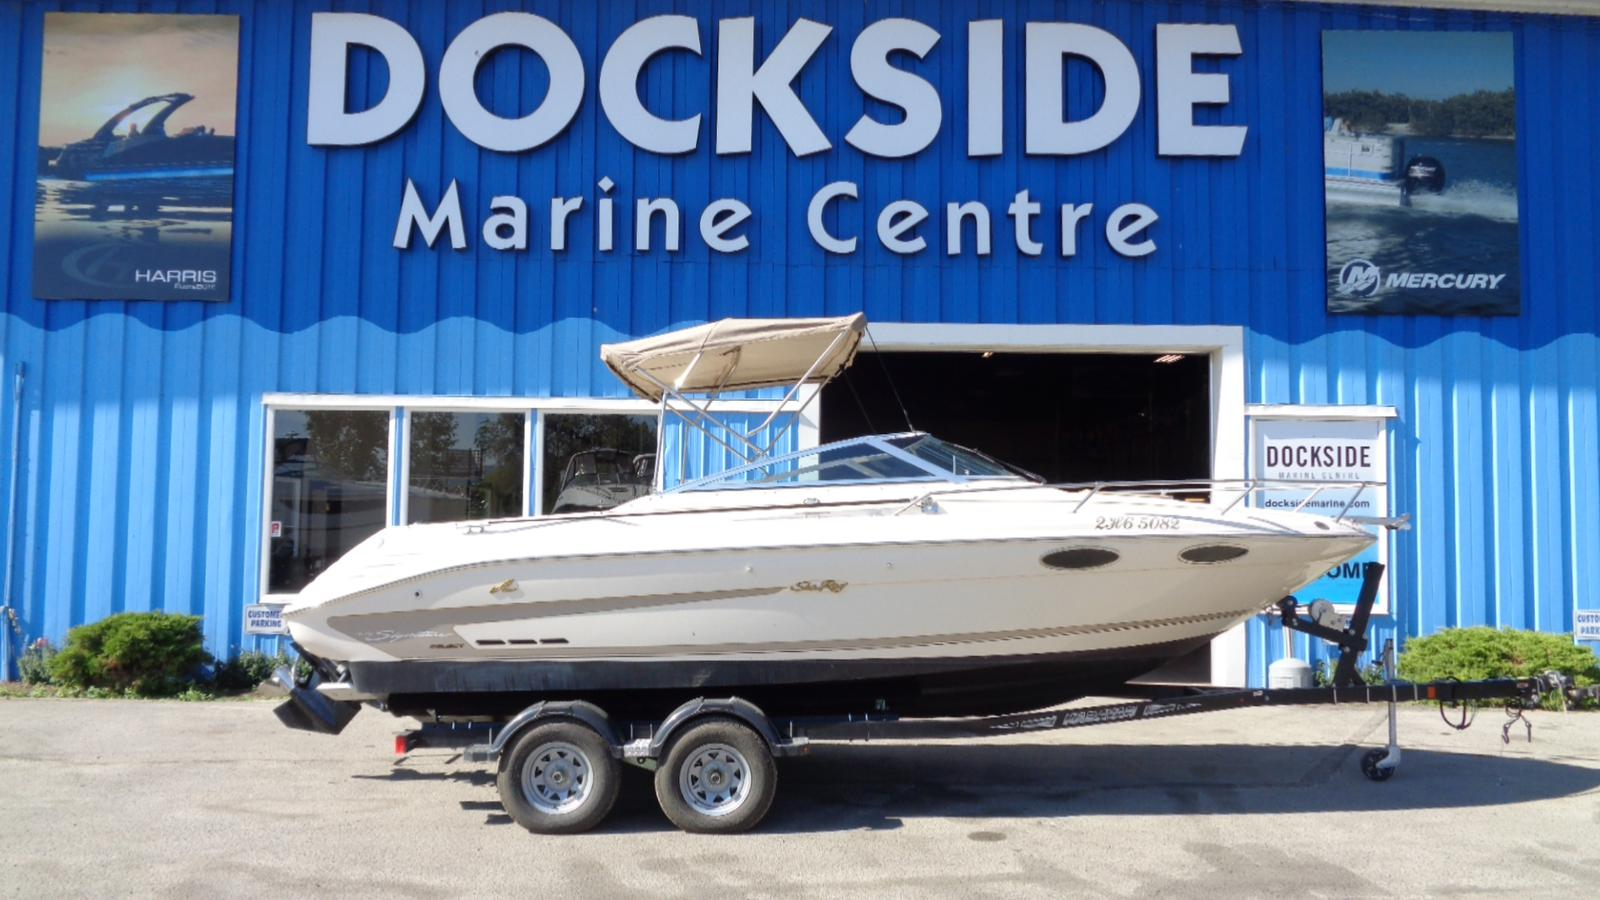 For Sale: 1995 Sea Ray 220 Cuddy 23ft<br/>Dockside Marine Centre, LTD.